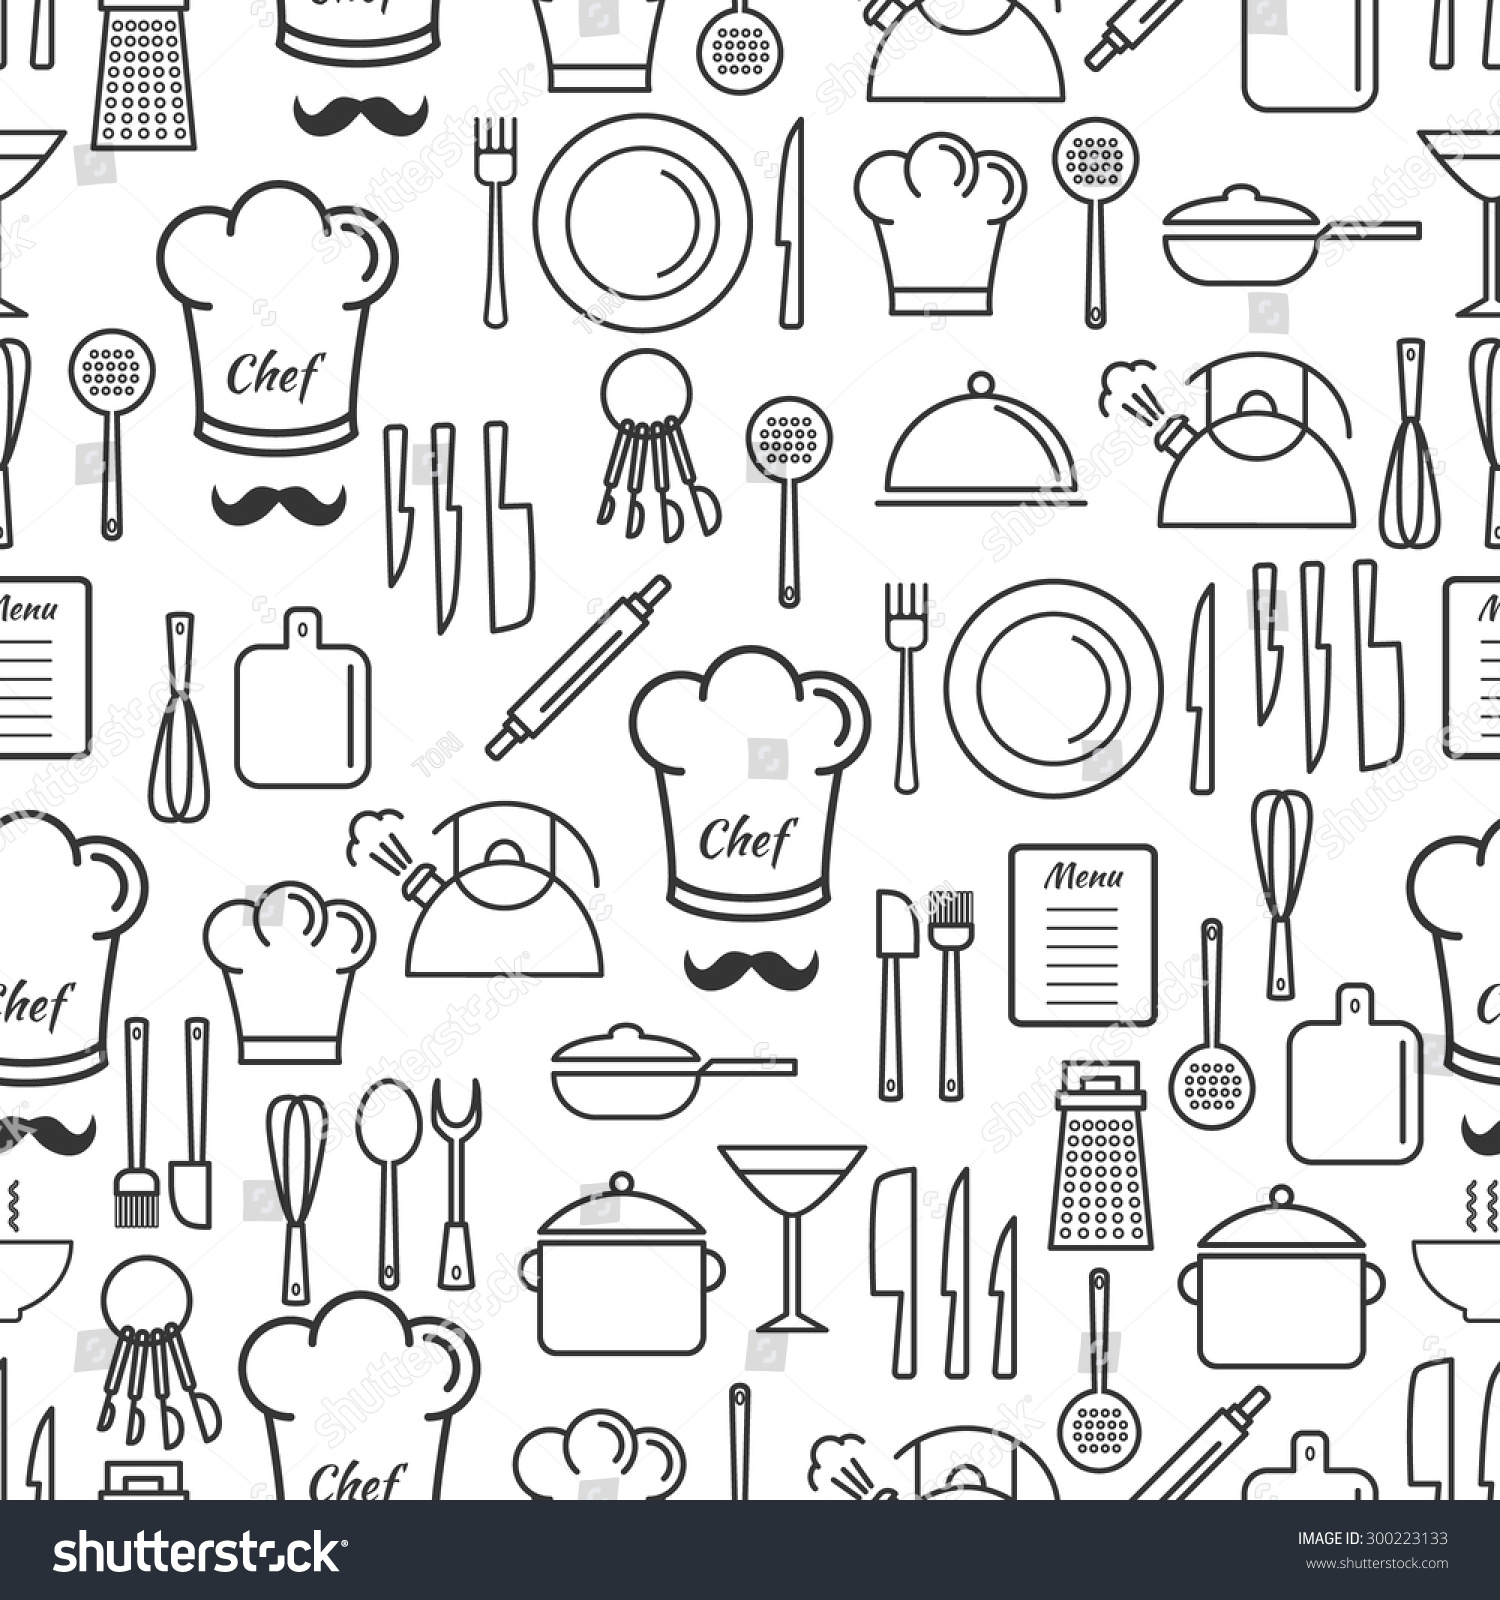 Cooking Utensil Line Icons Seamless Pattern Linear Stock Vector ...